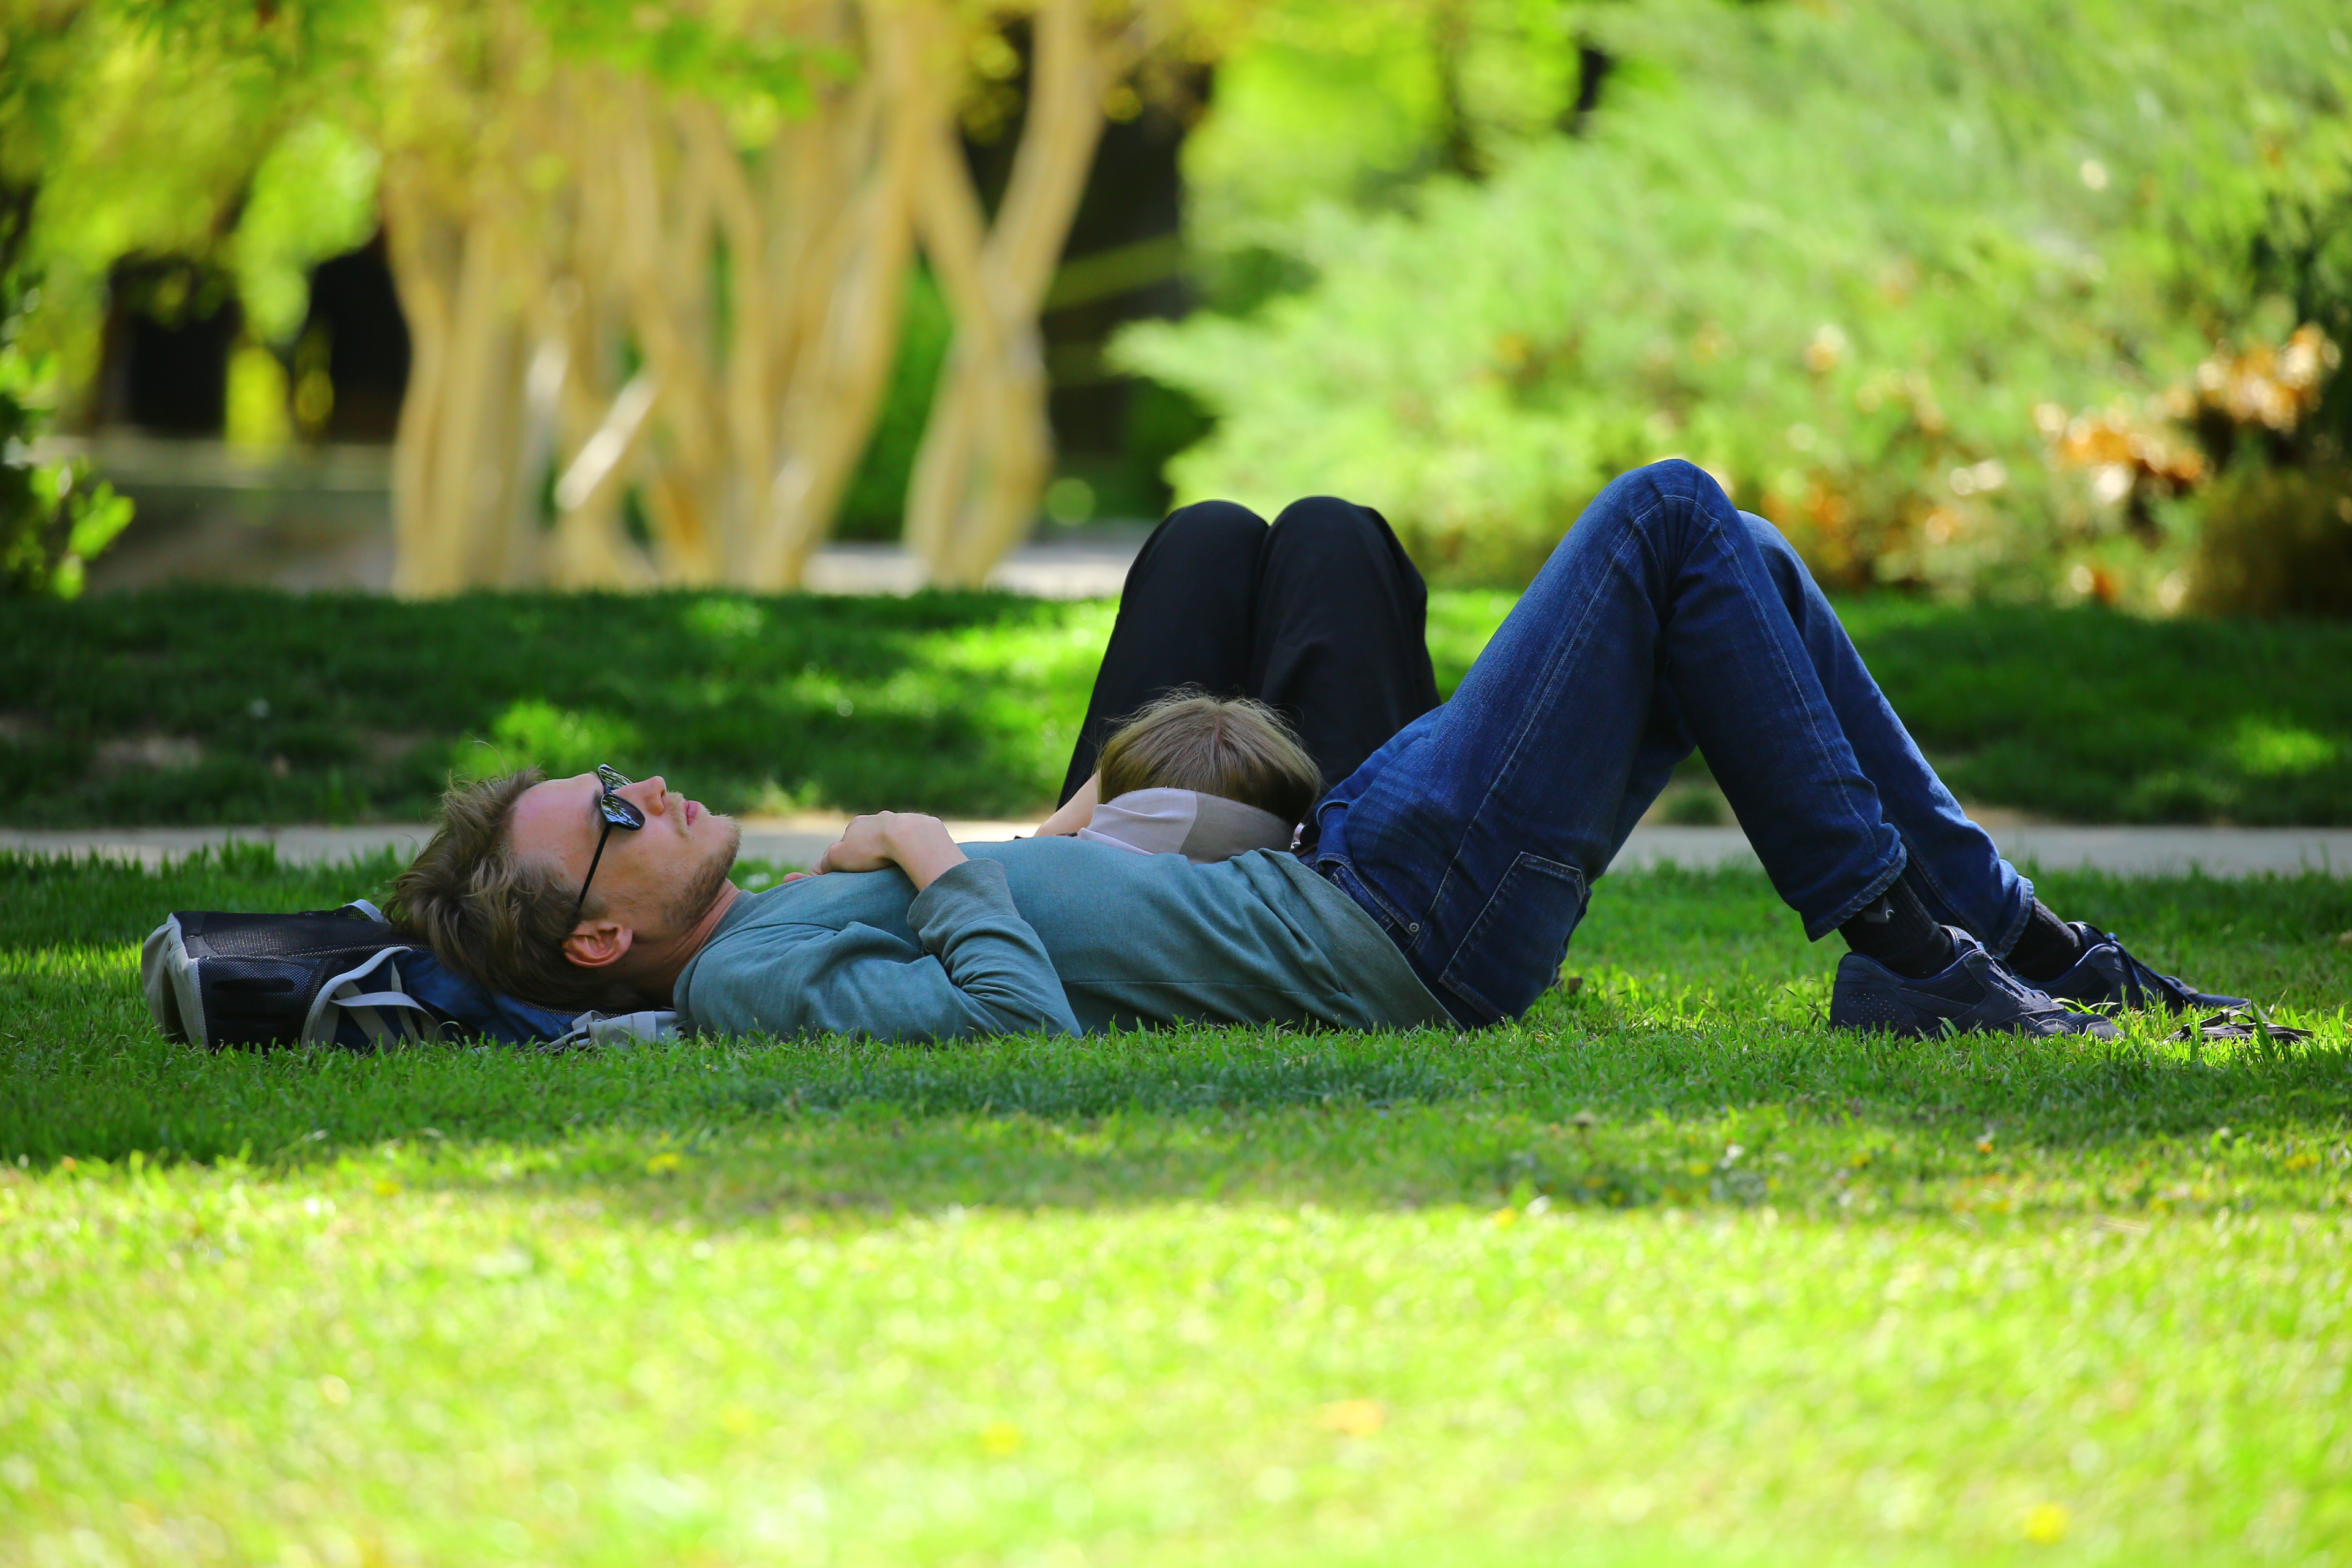 Free Images : man, grass, person, people, woman, field, lawn, meadow ...